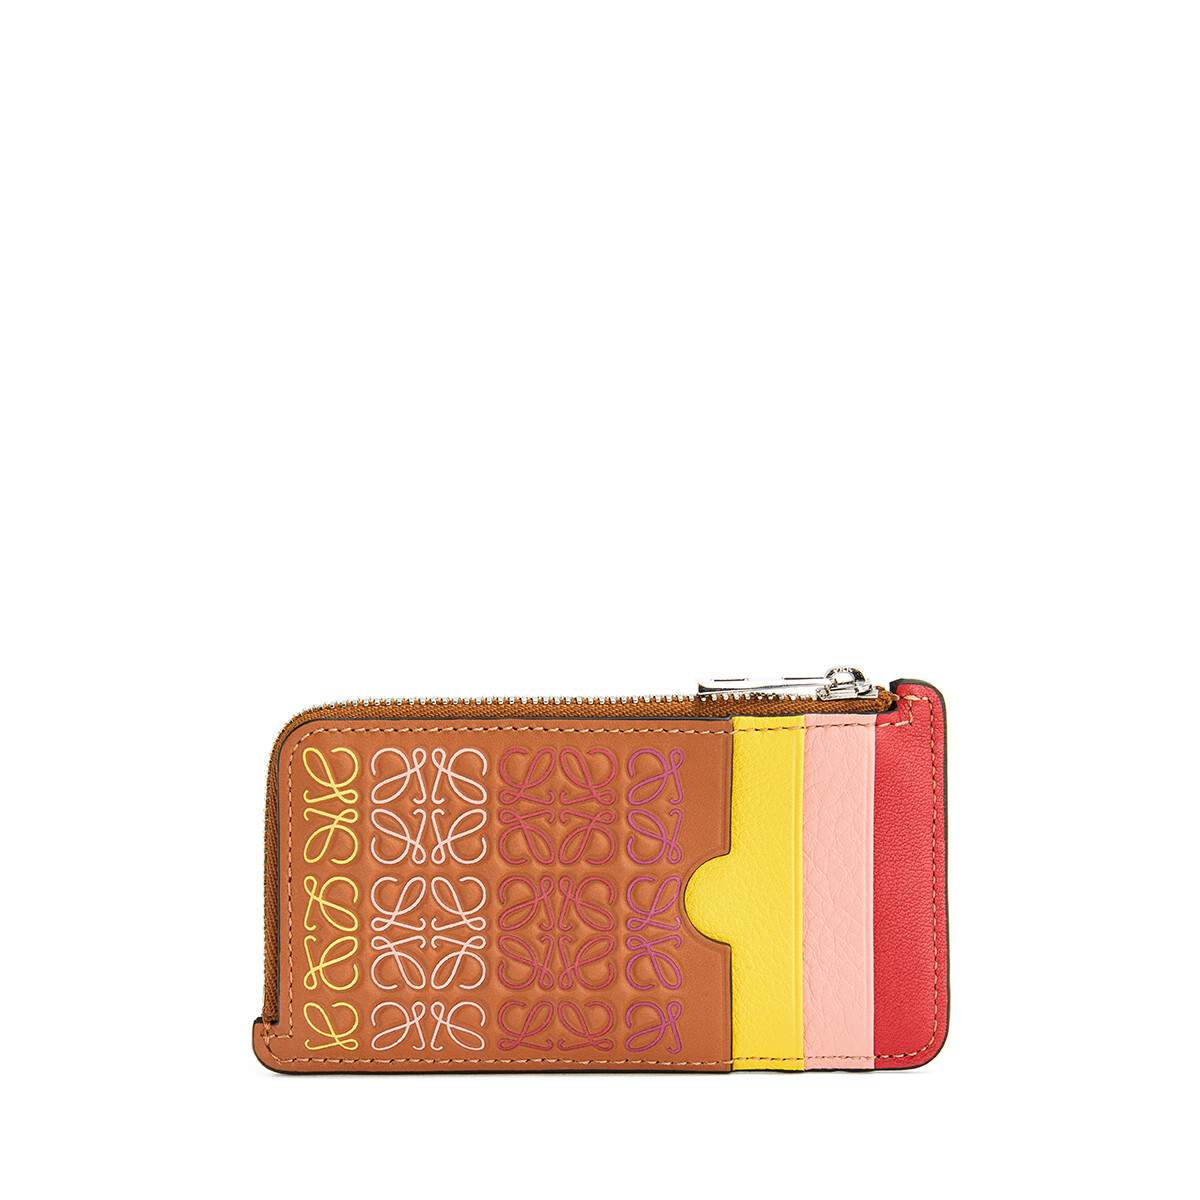 LOEWE Repeat Coin Cardholder Tan/Multicolor front